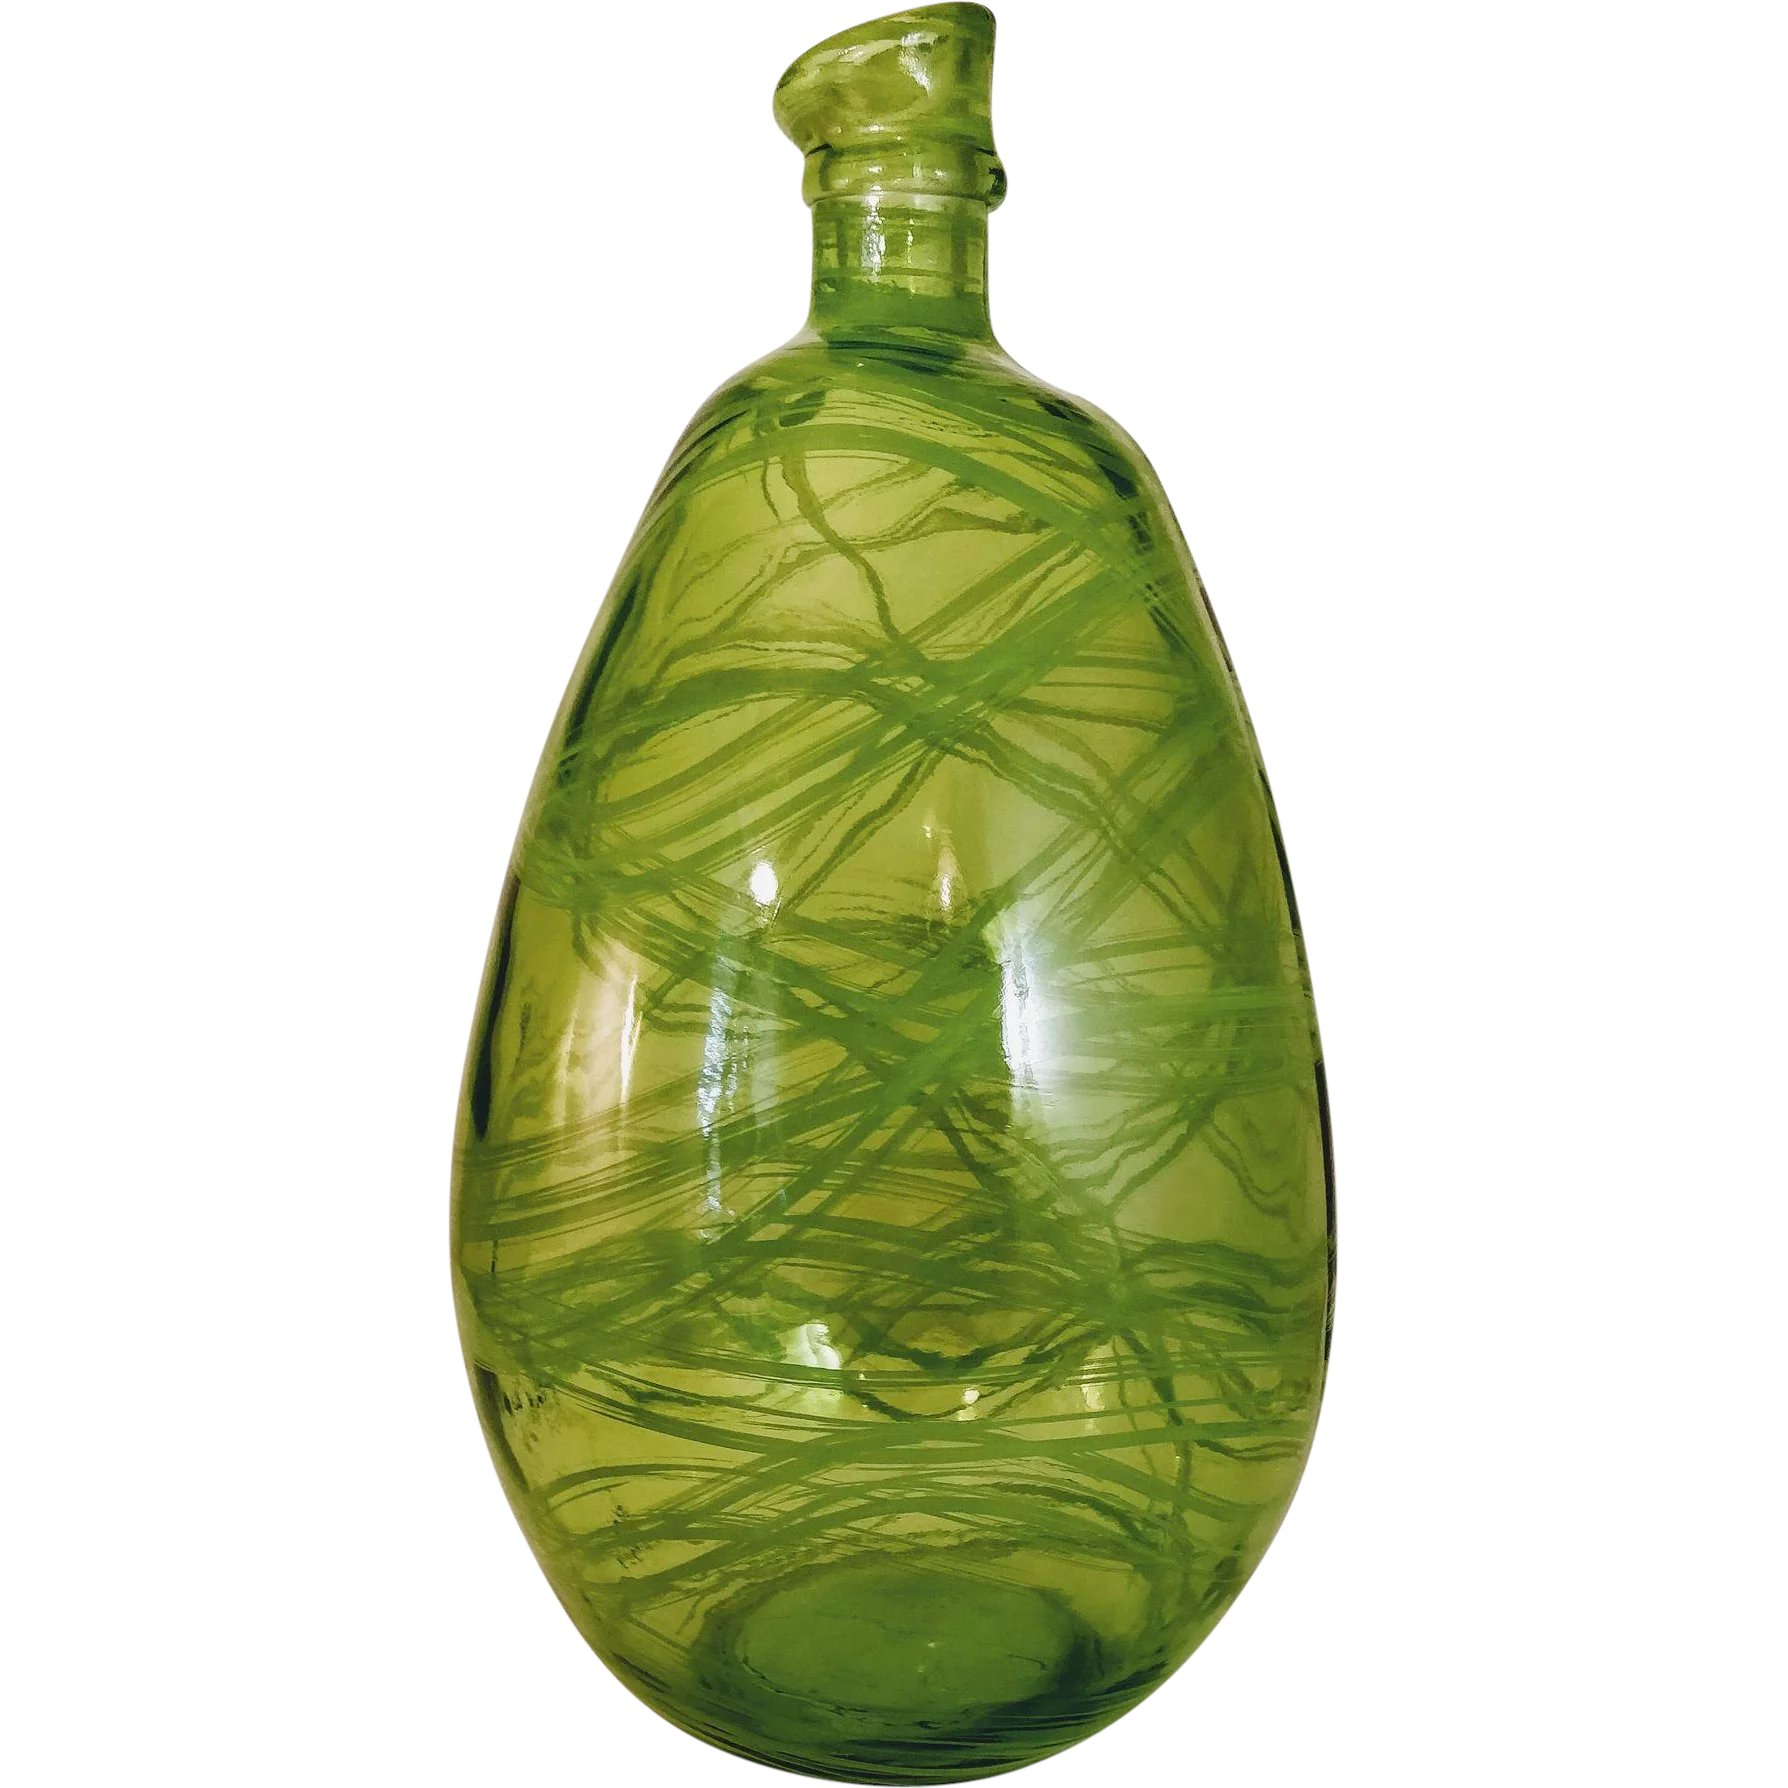 Glassware Vase Vintage Green Recycled Glass Vase Spain Bottle Jar Eco Friendly Spanish Glassware Over Sized